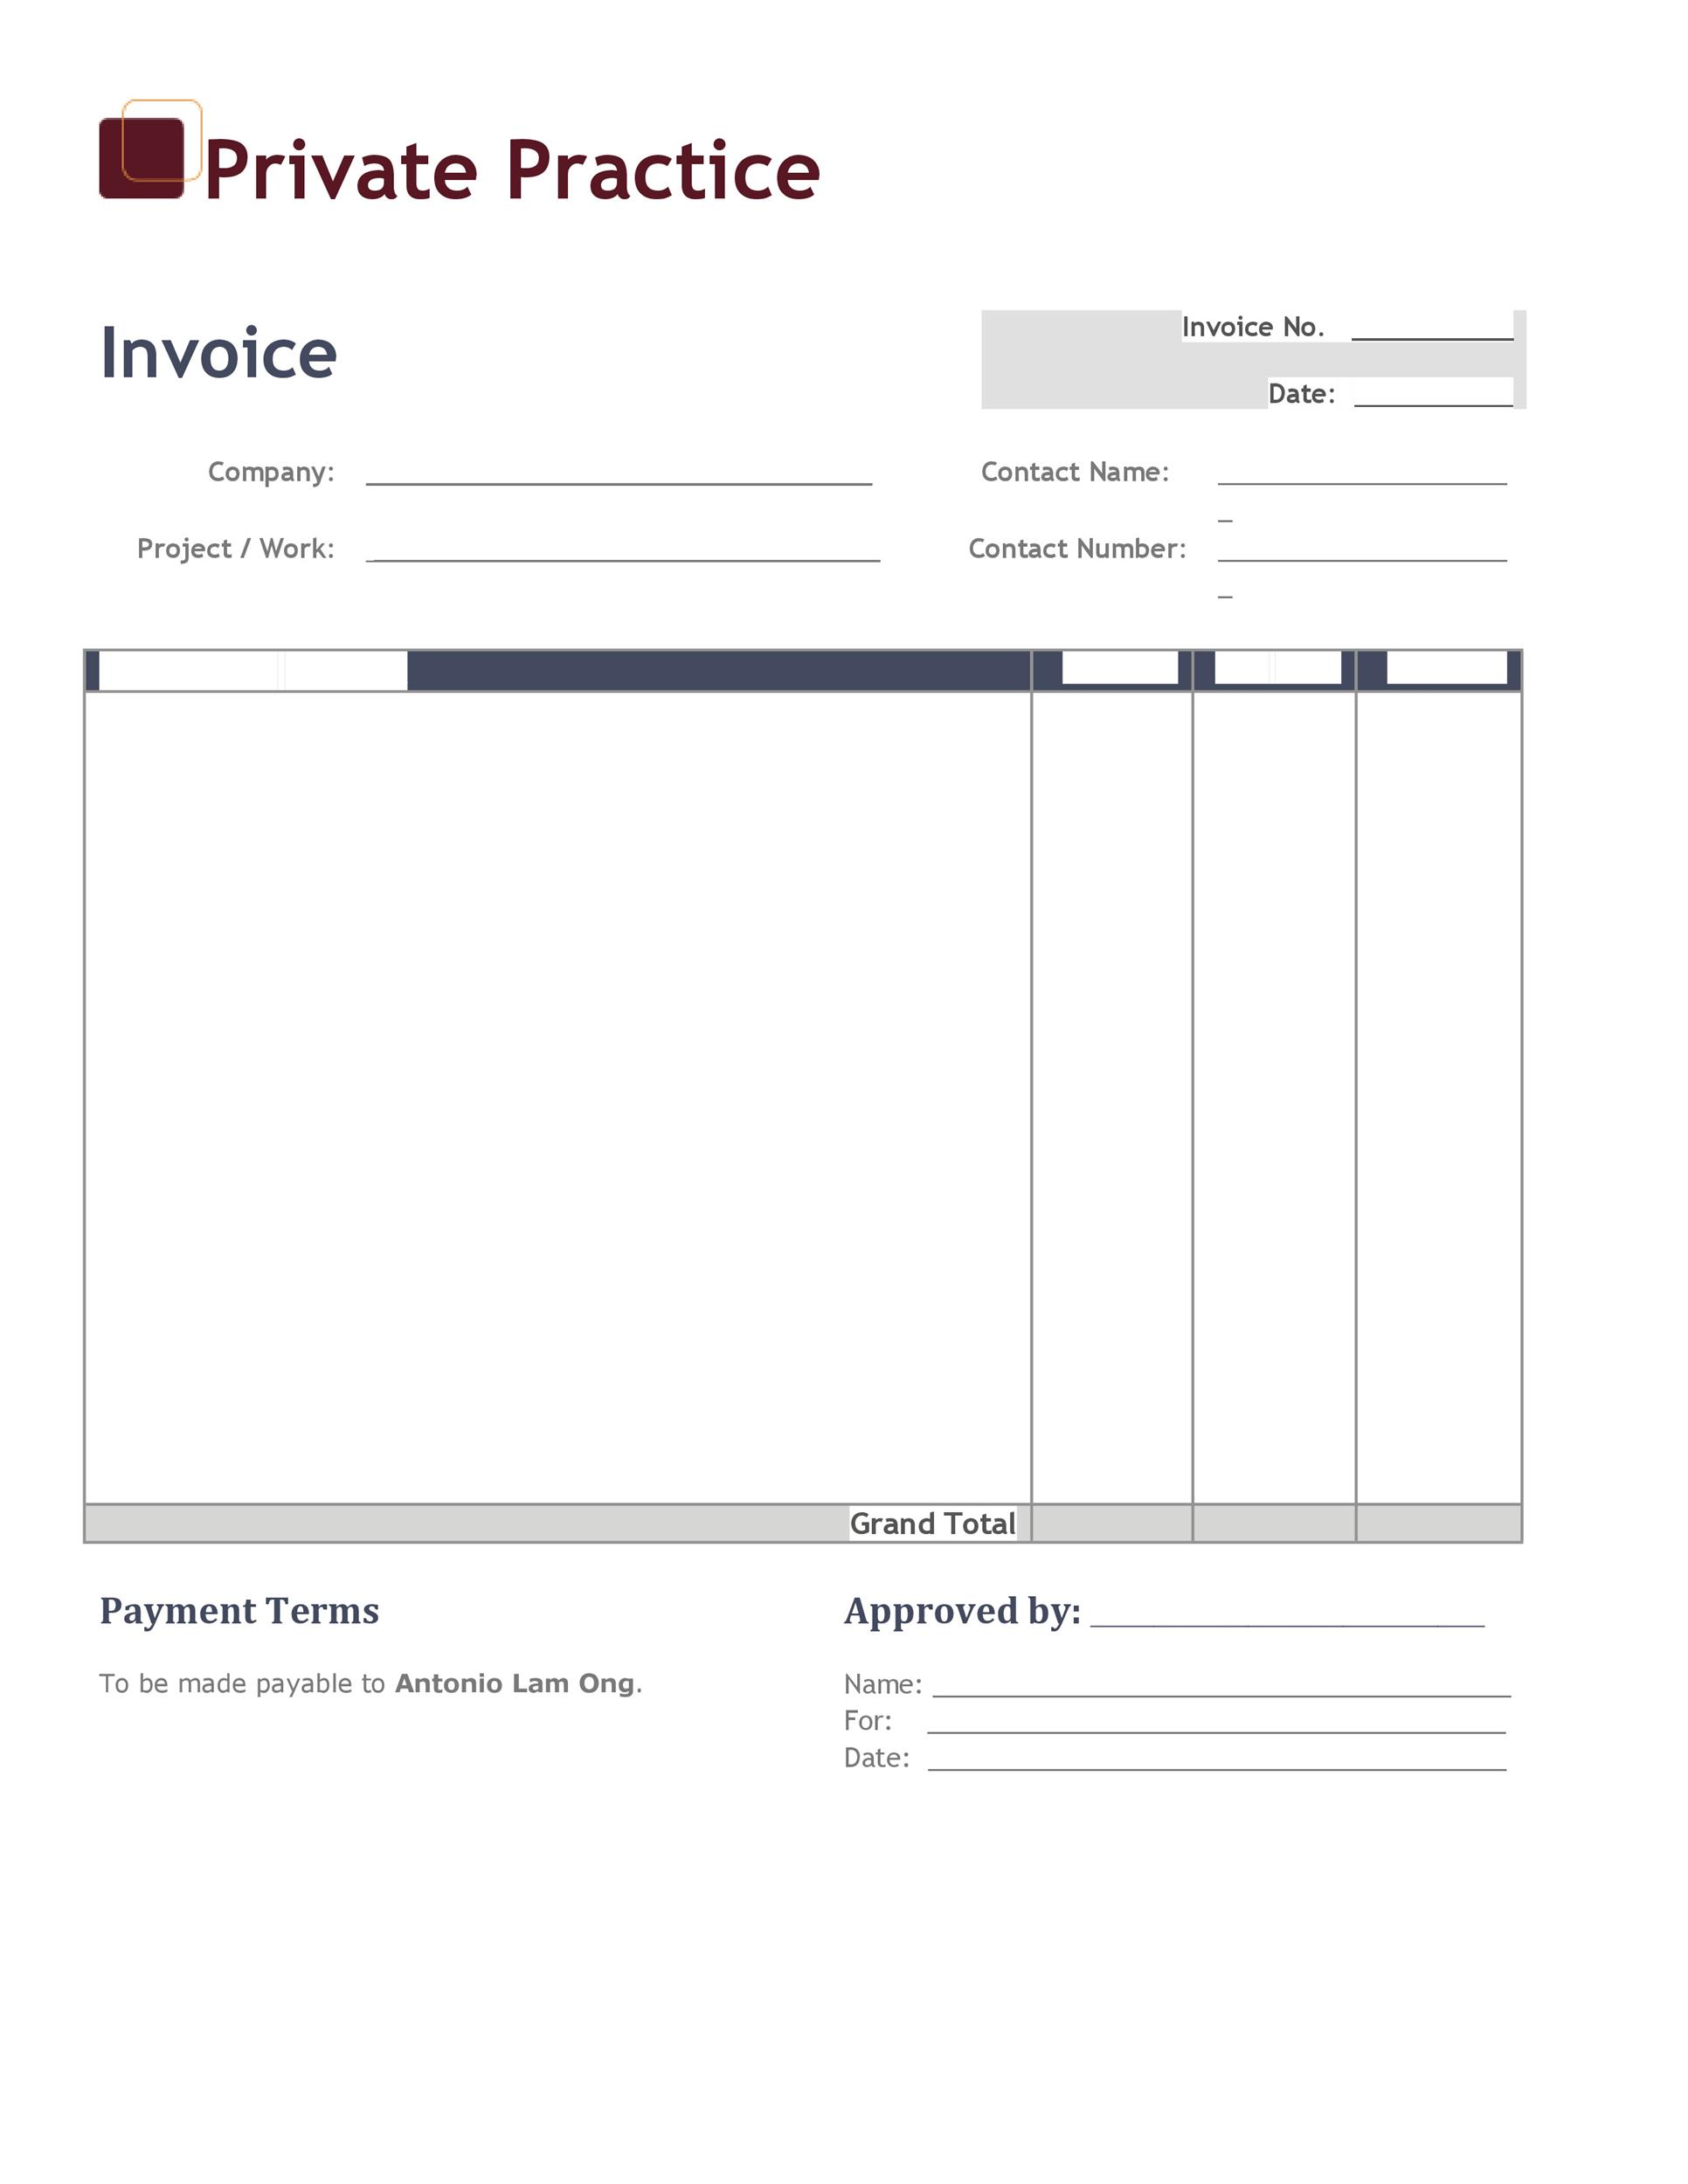 Invoice Templates Blank Commercial PDF Word Excel - Blank invoice template free download for service business